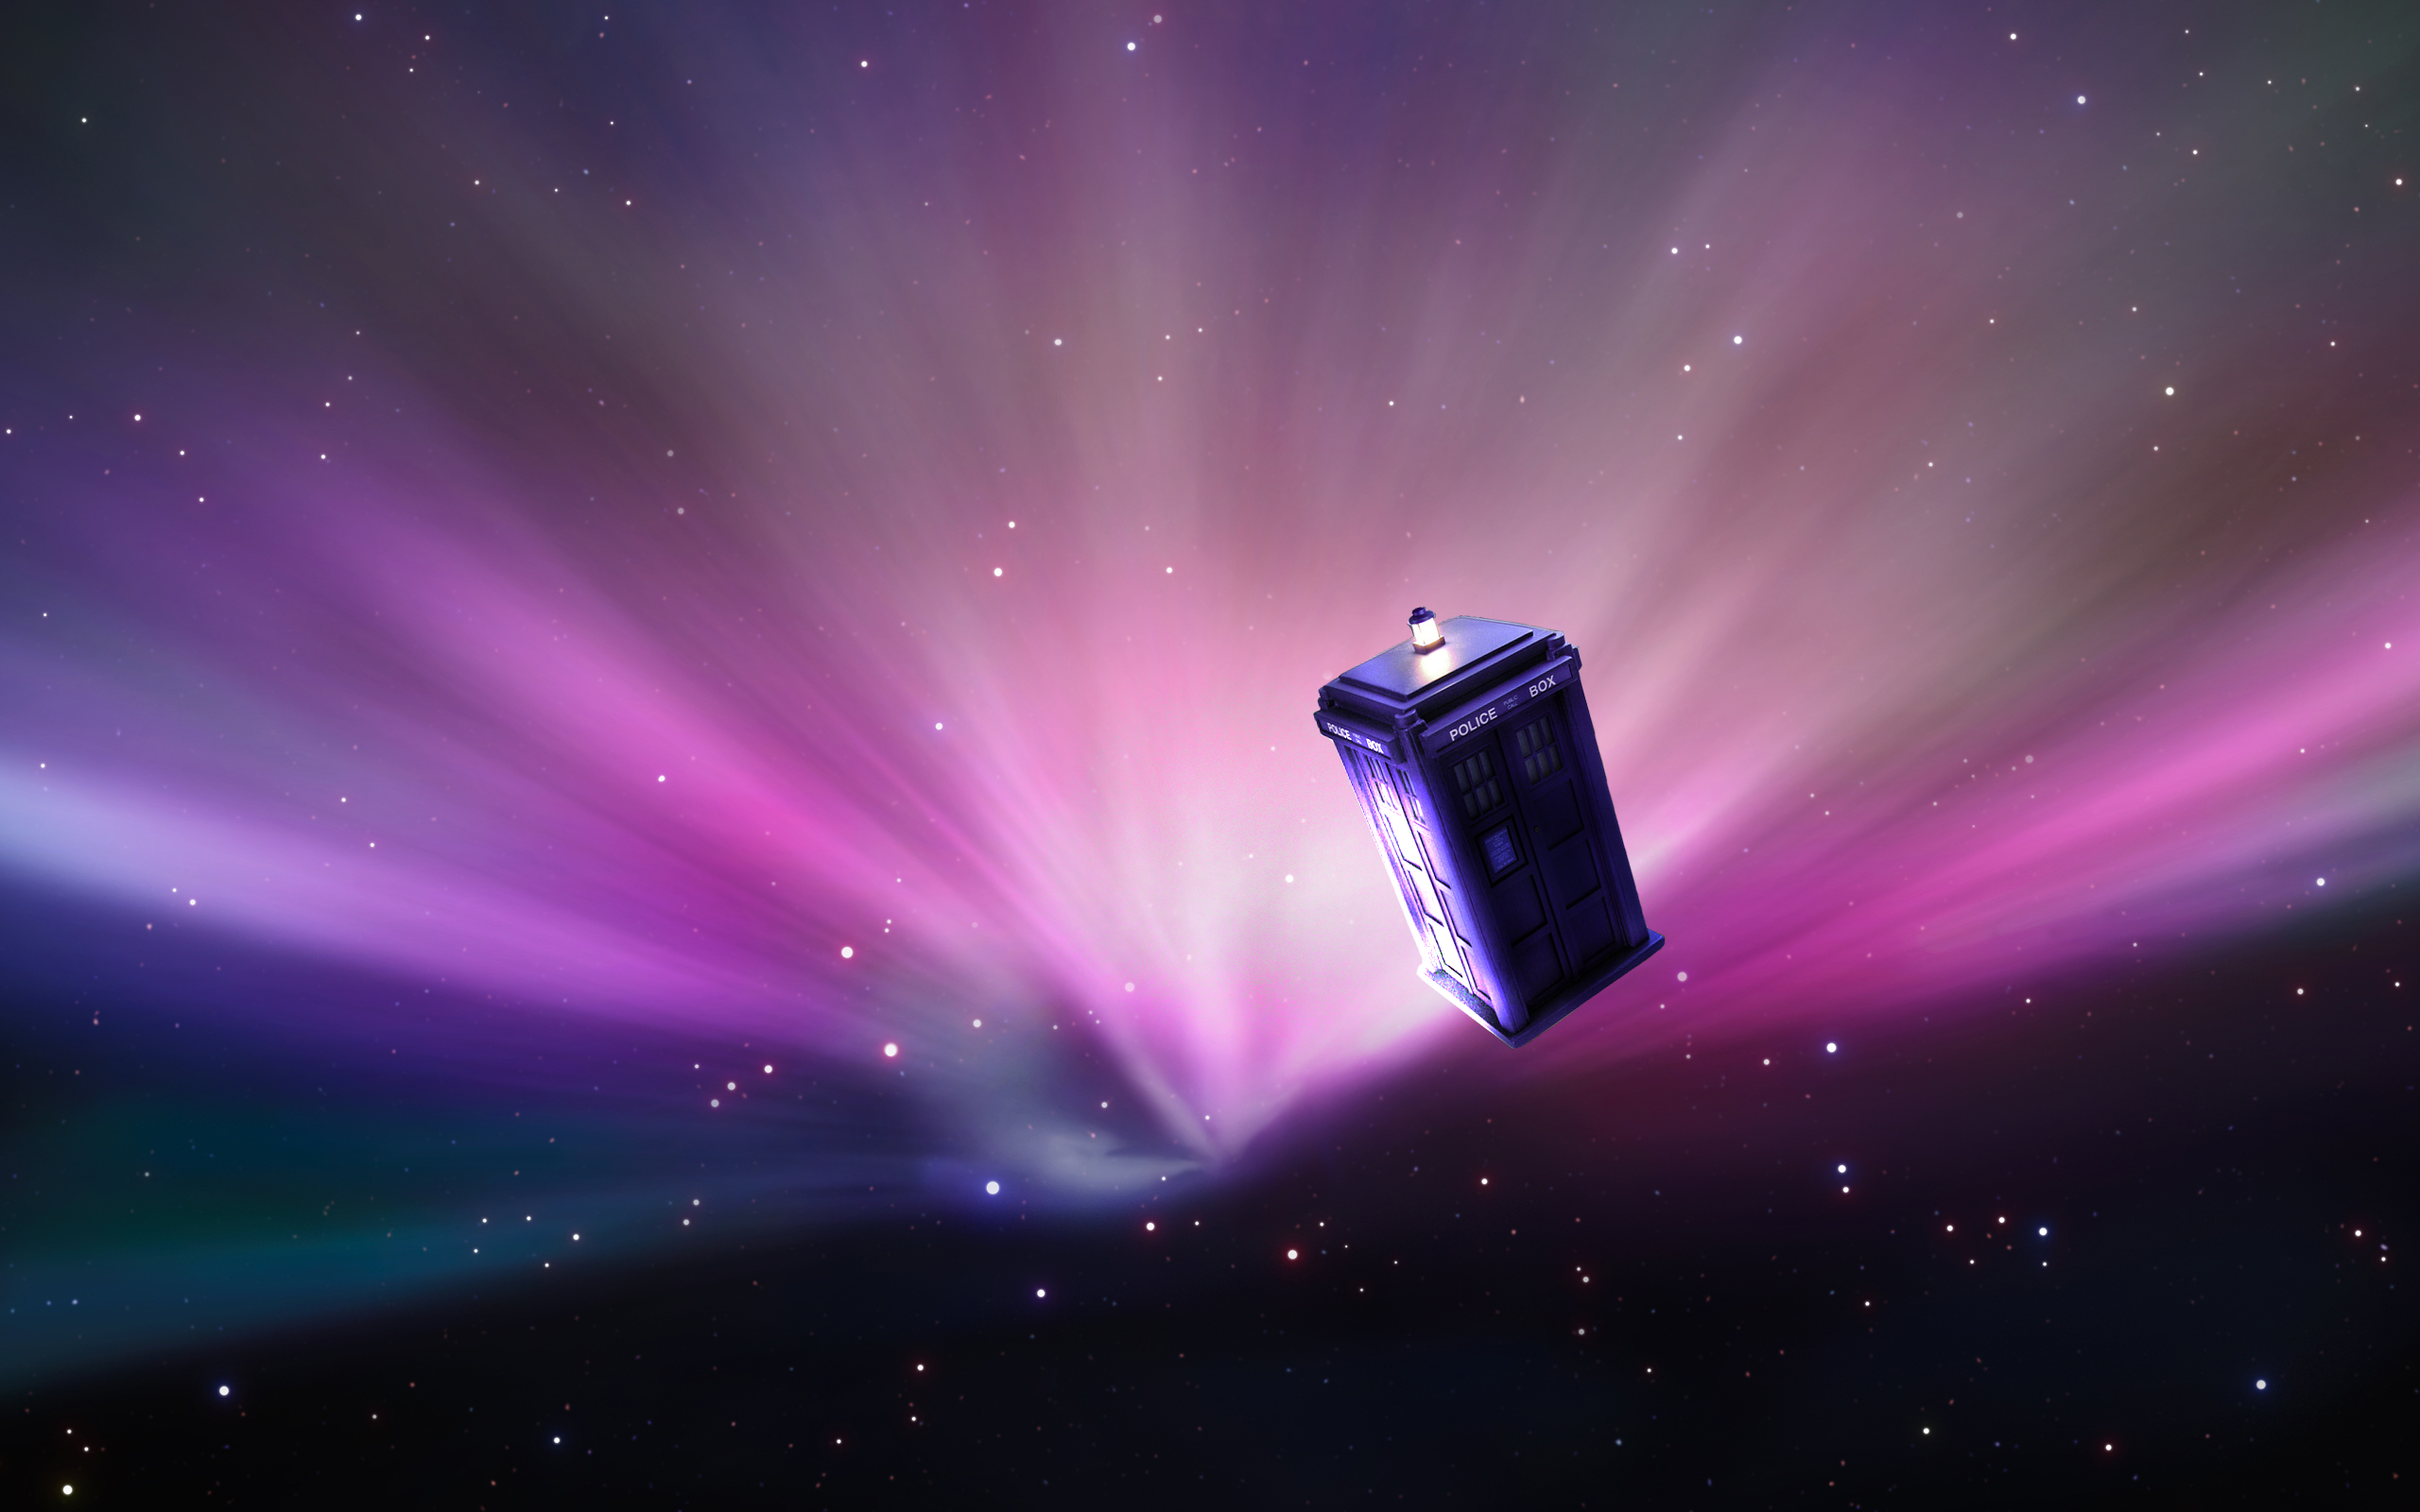 Doctor Who Desktop Wallpaper 1080p